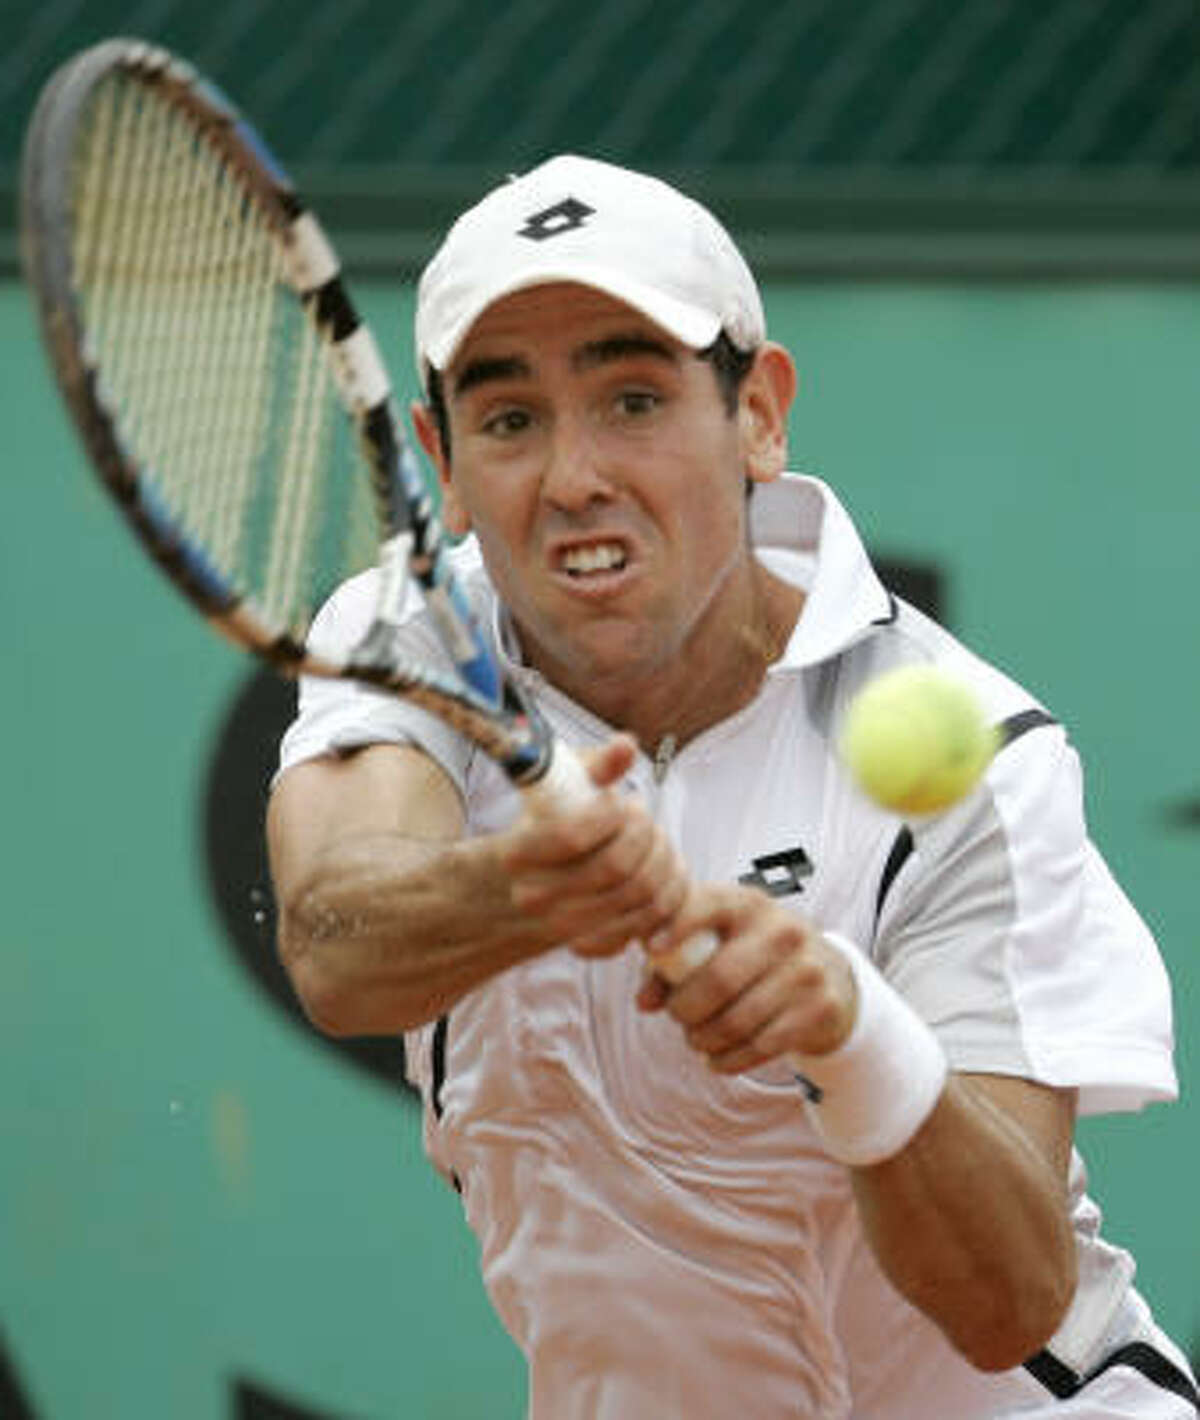 USA's 100th-ranked Wayne Odesnik advances to the semifinals of the U.S. Men's Clay Court Championships two years in a row.